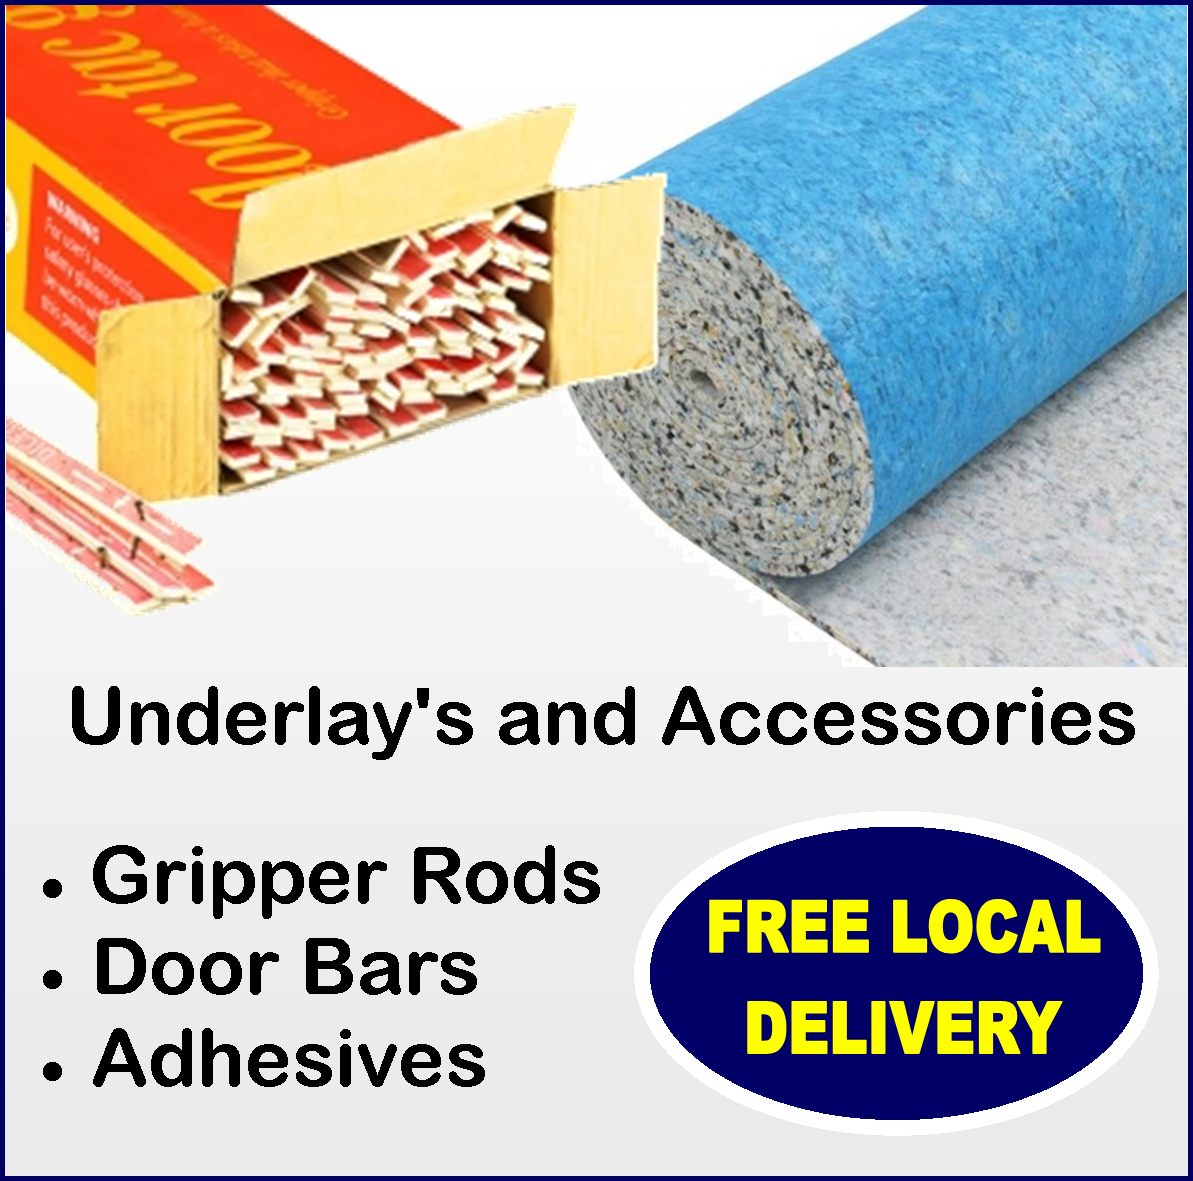 Underlay and accessories from Carpets Weekly www.carpetsweekly.co.uk Tel 08007720966